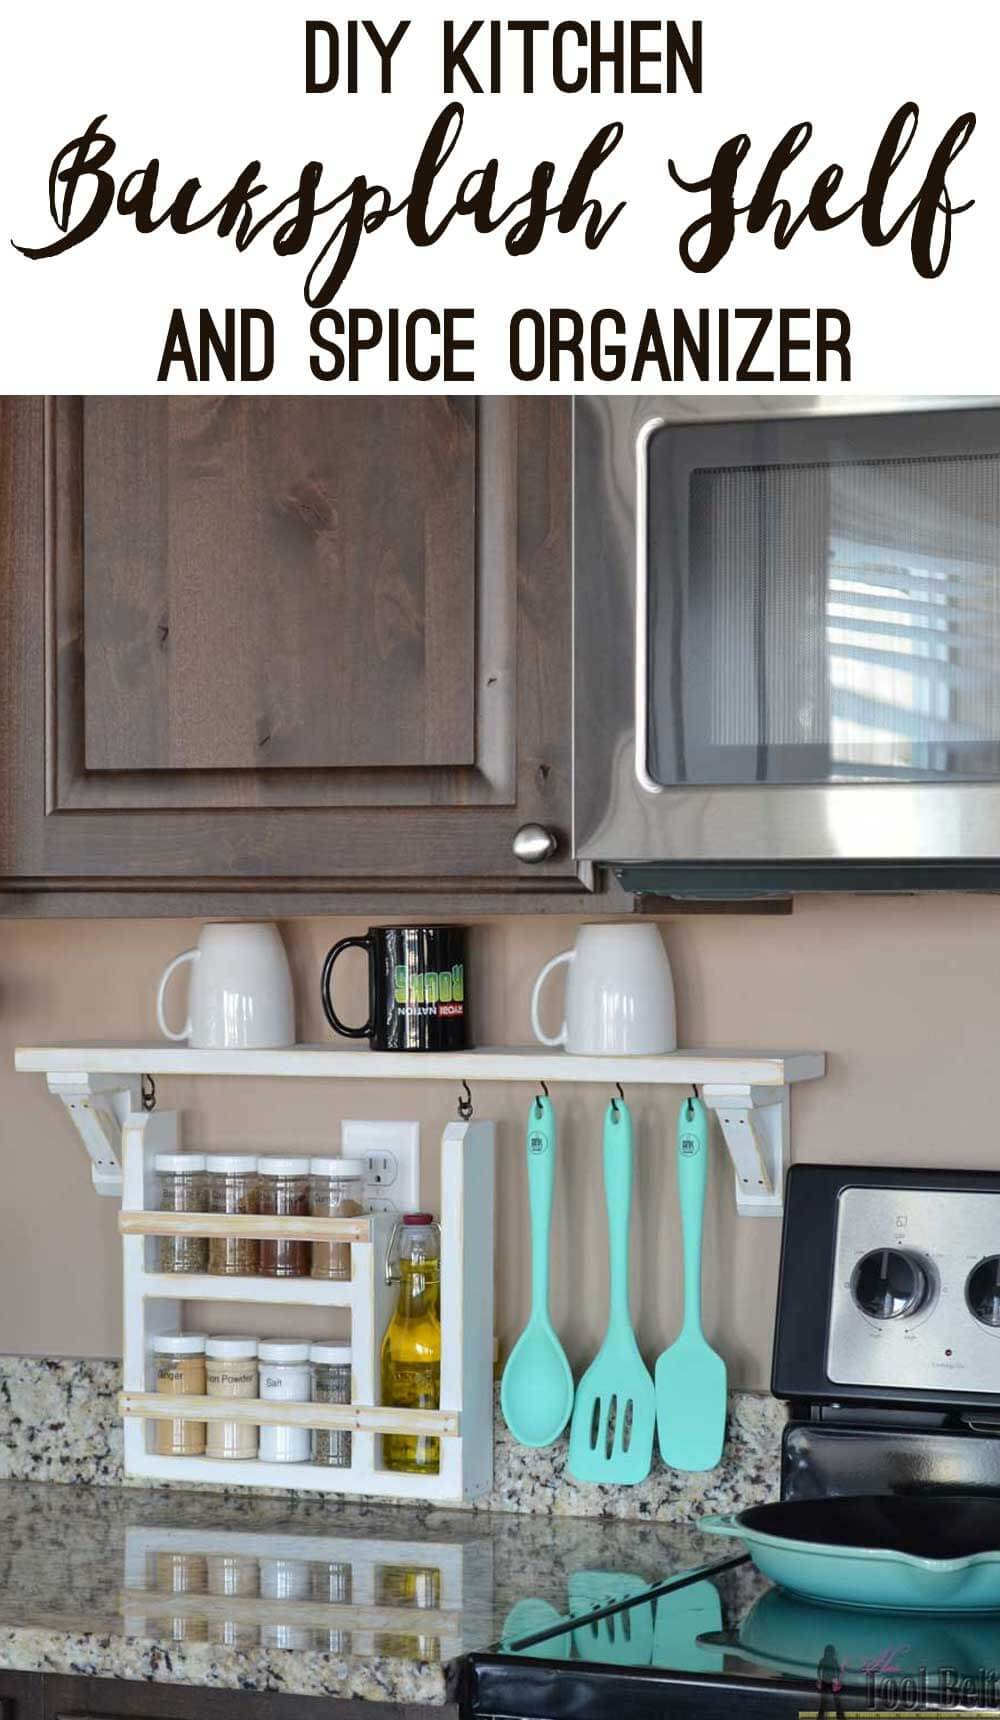 Shallow Space Spice and Utensil Organizer